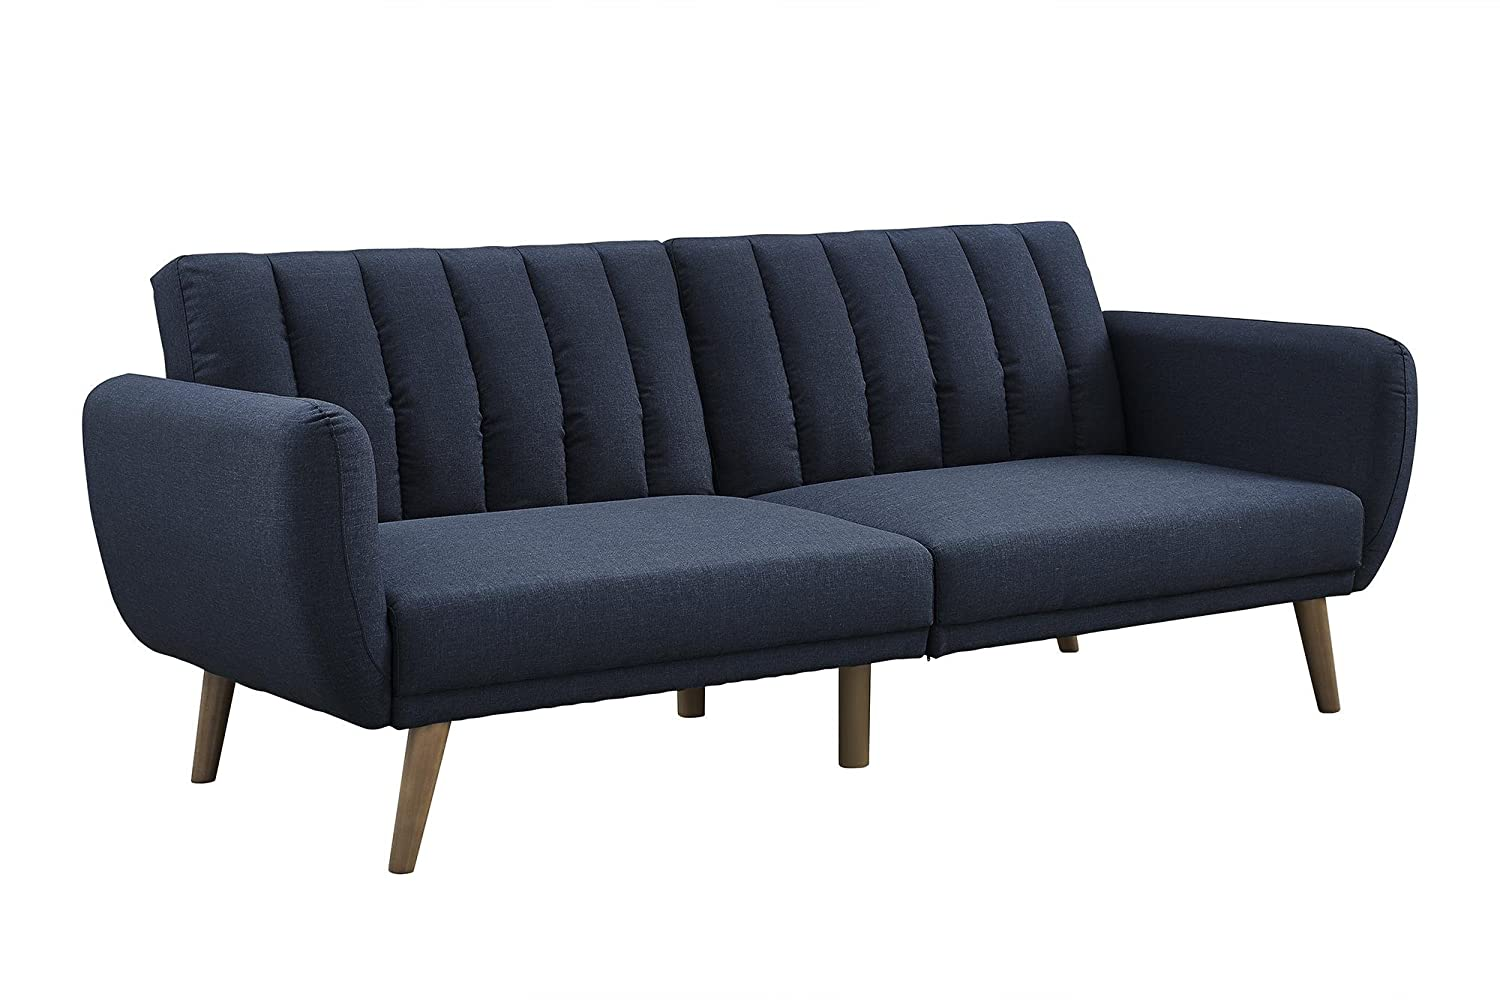 amazon    novogratz brittany sofa futon premium linen upholstery and wooden legs blue linen  kitchen  u0026 dining amazon    novogratz brittany sofa futon premium linen      rh   amazon